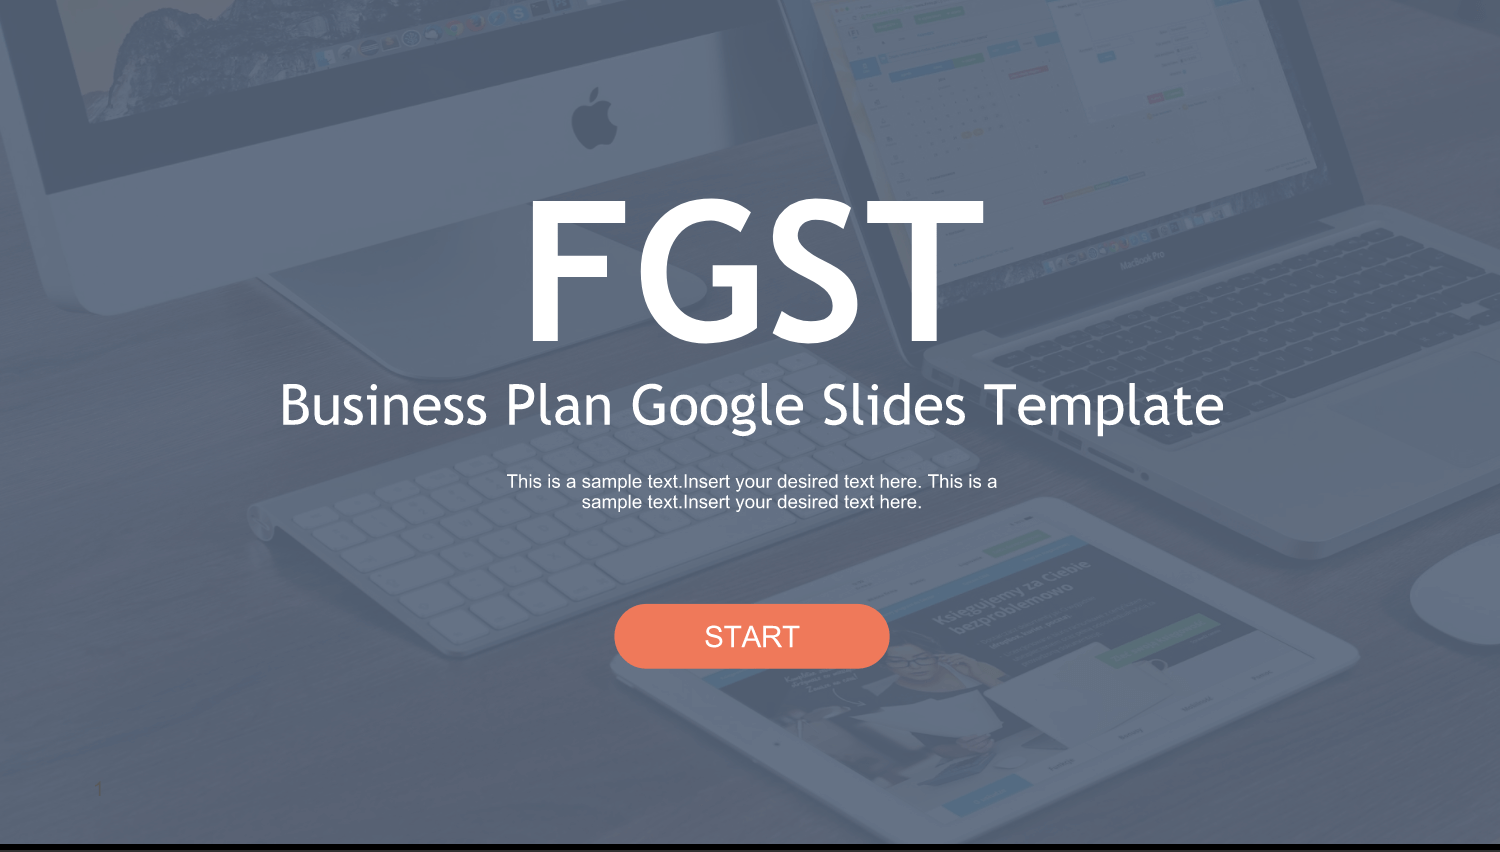 A free Google Slides template